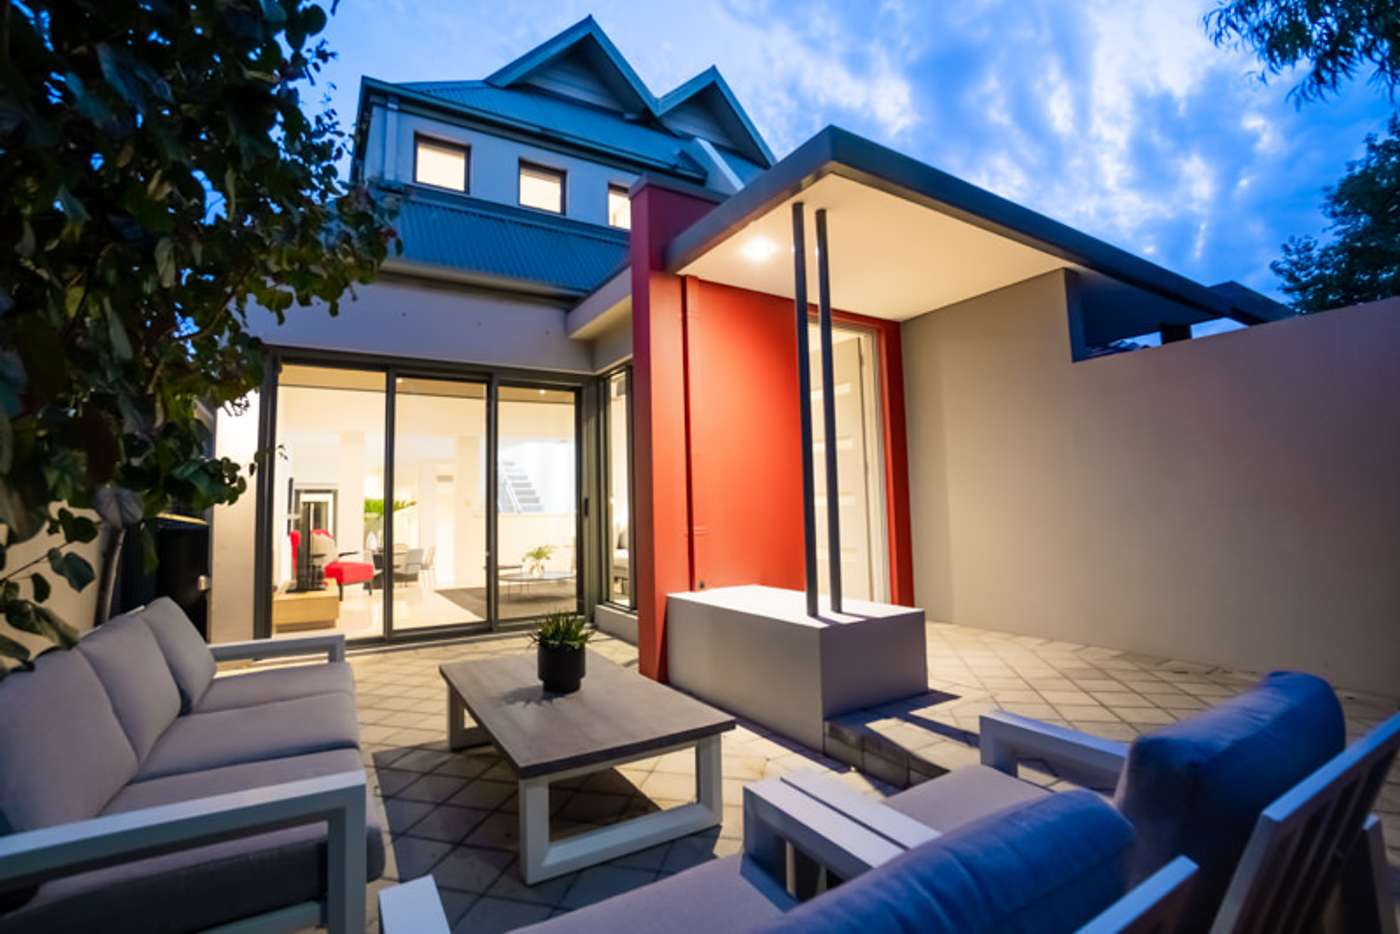 Main view of Homely house listing, 15 Grosvenor Road, Mount Lawley WA 6050